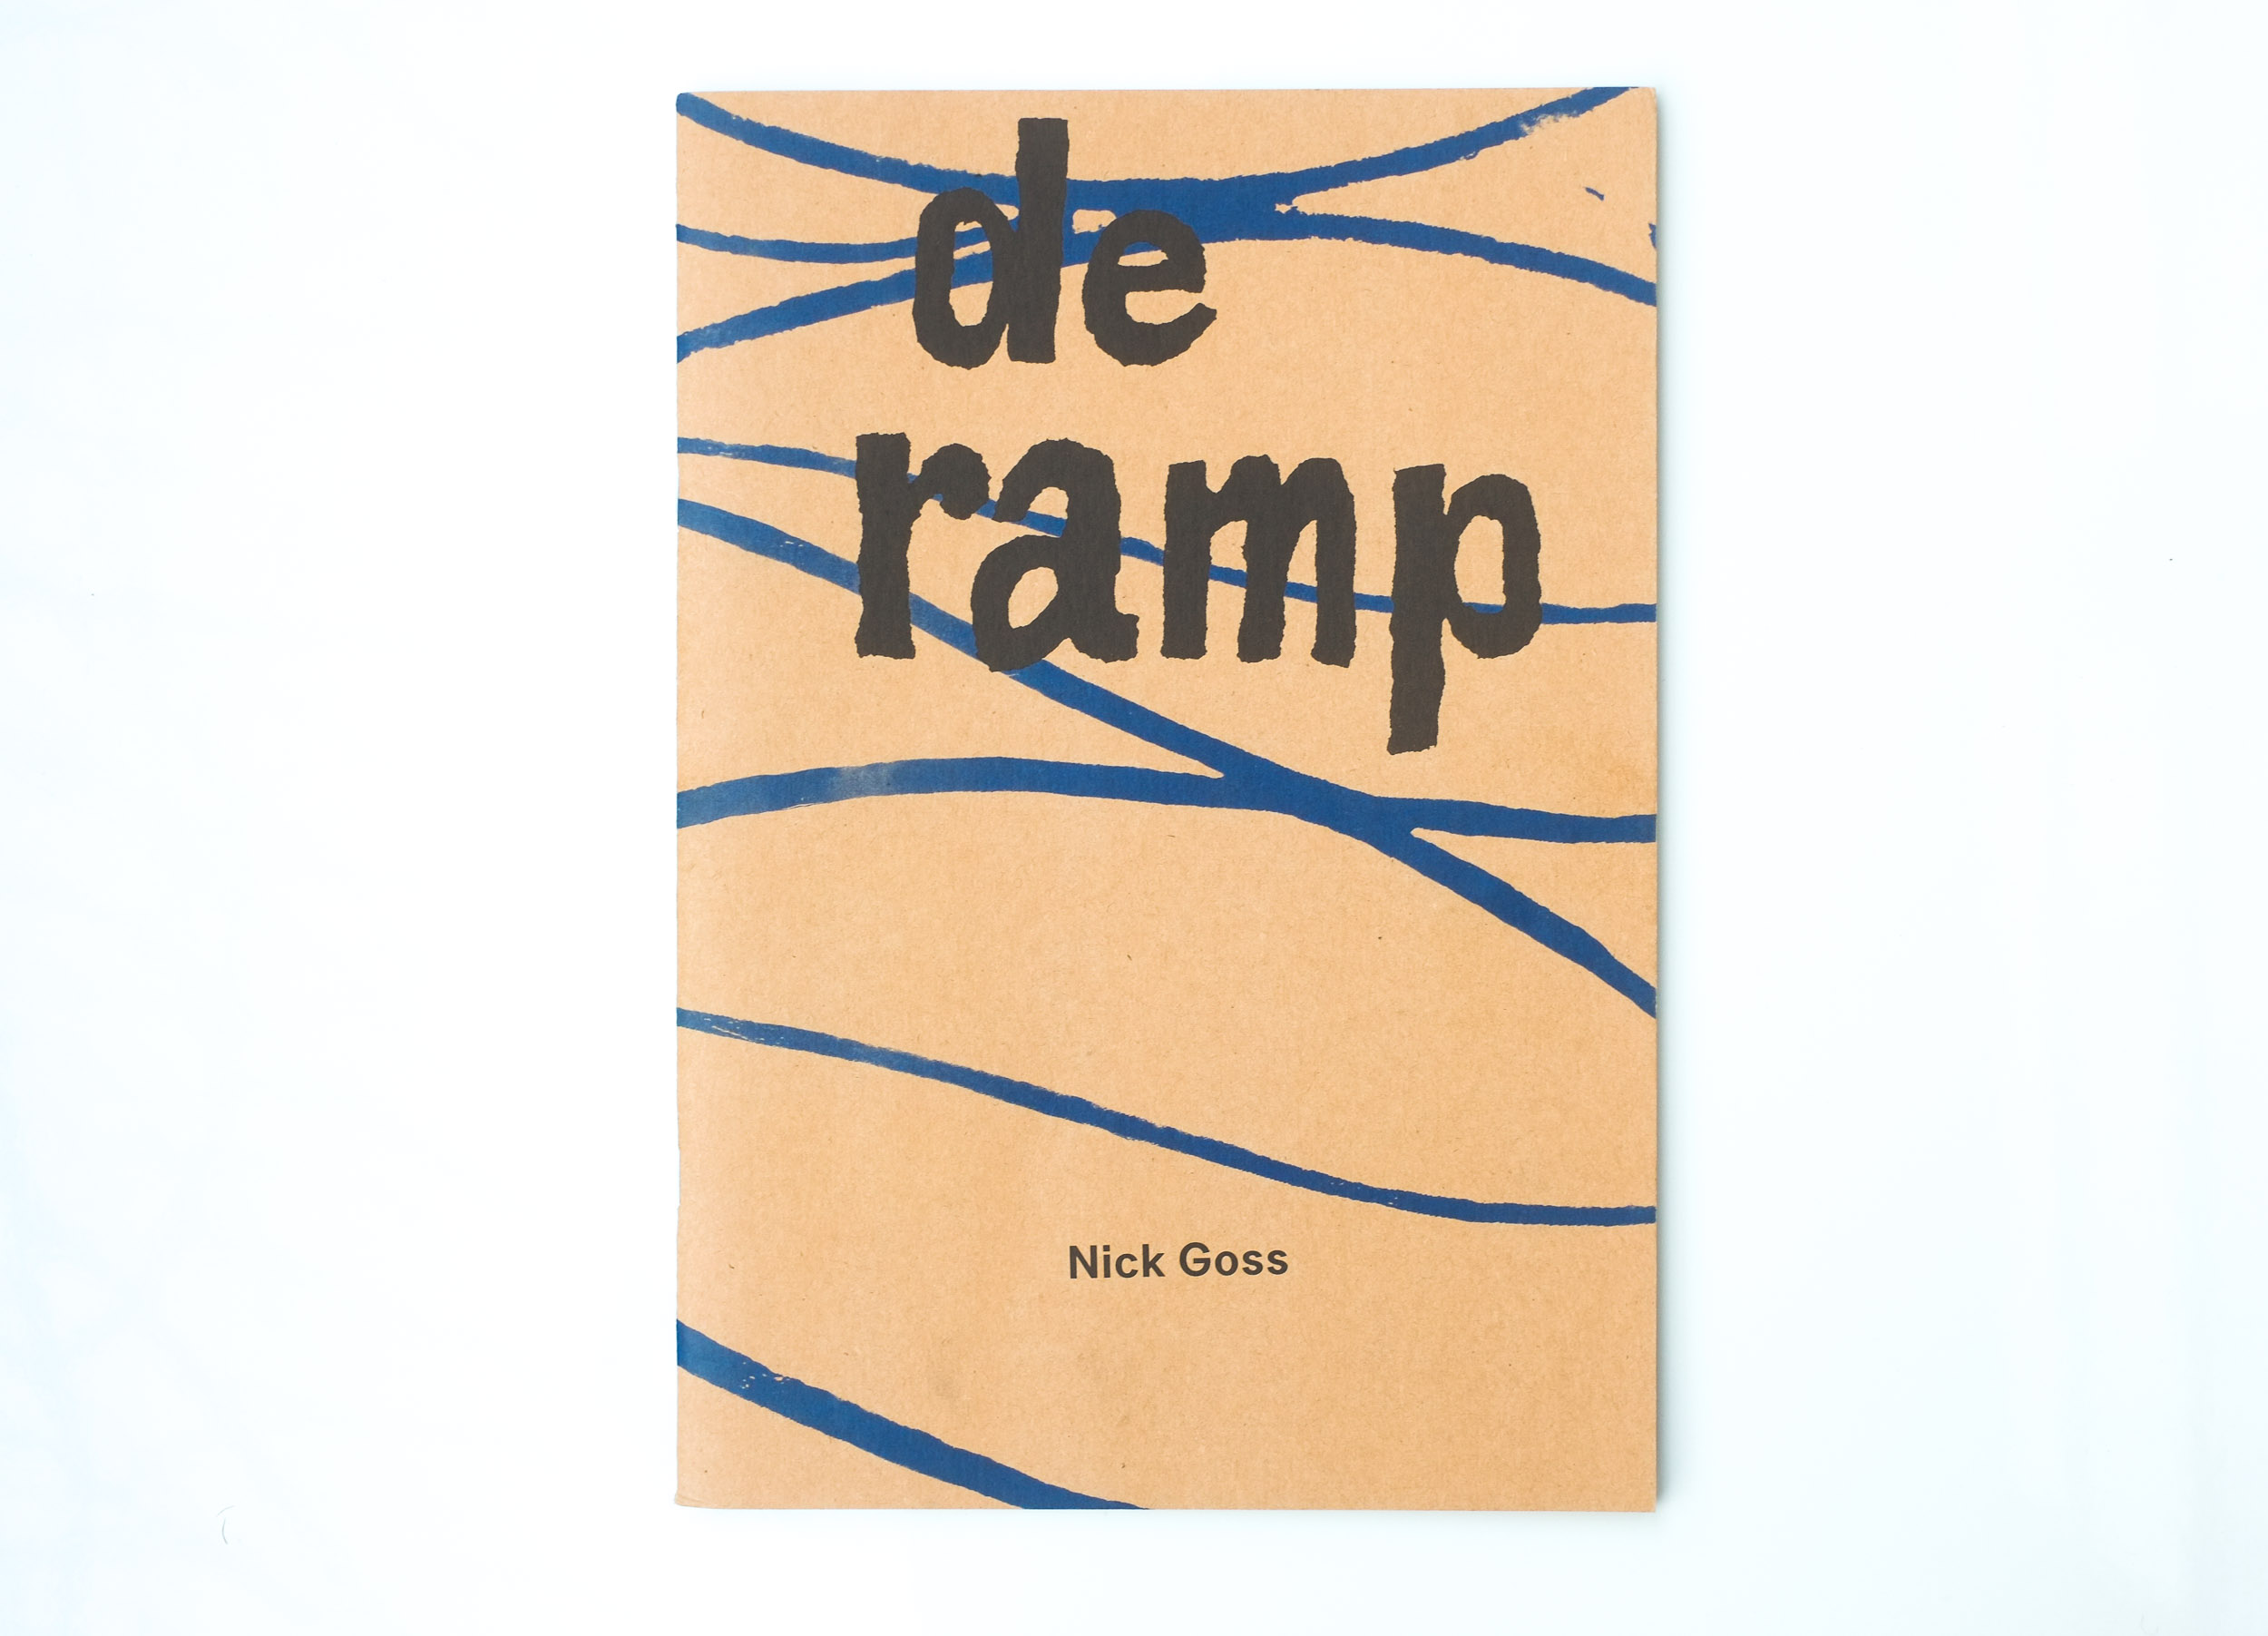 nick-goss-de-ramp-9743